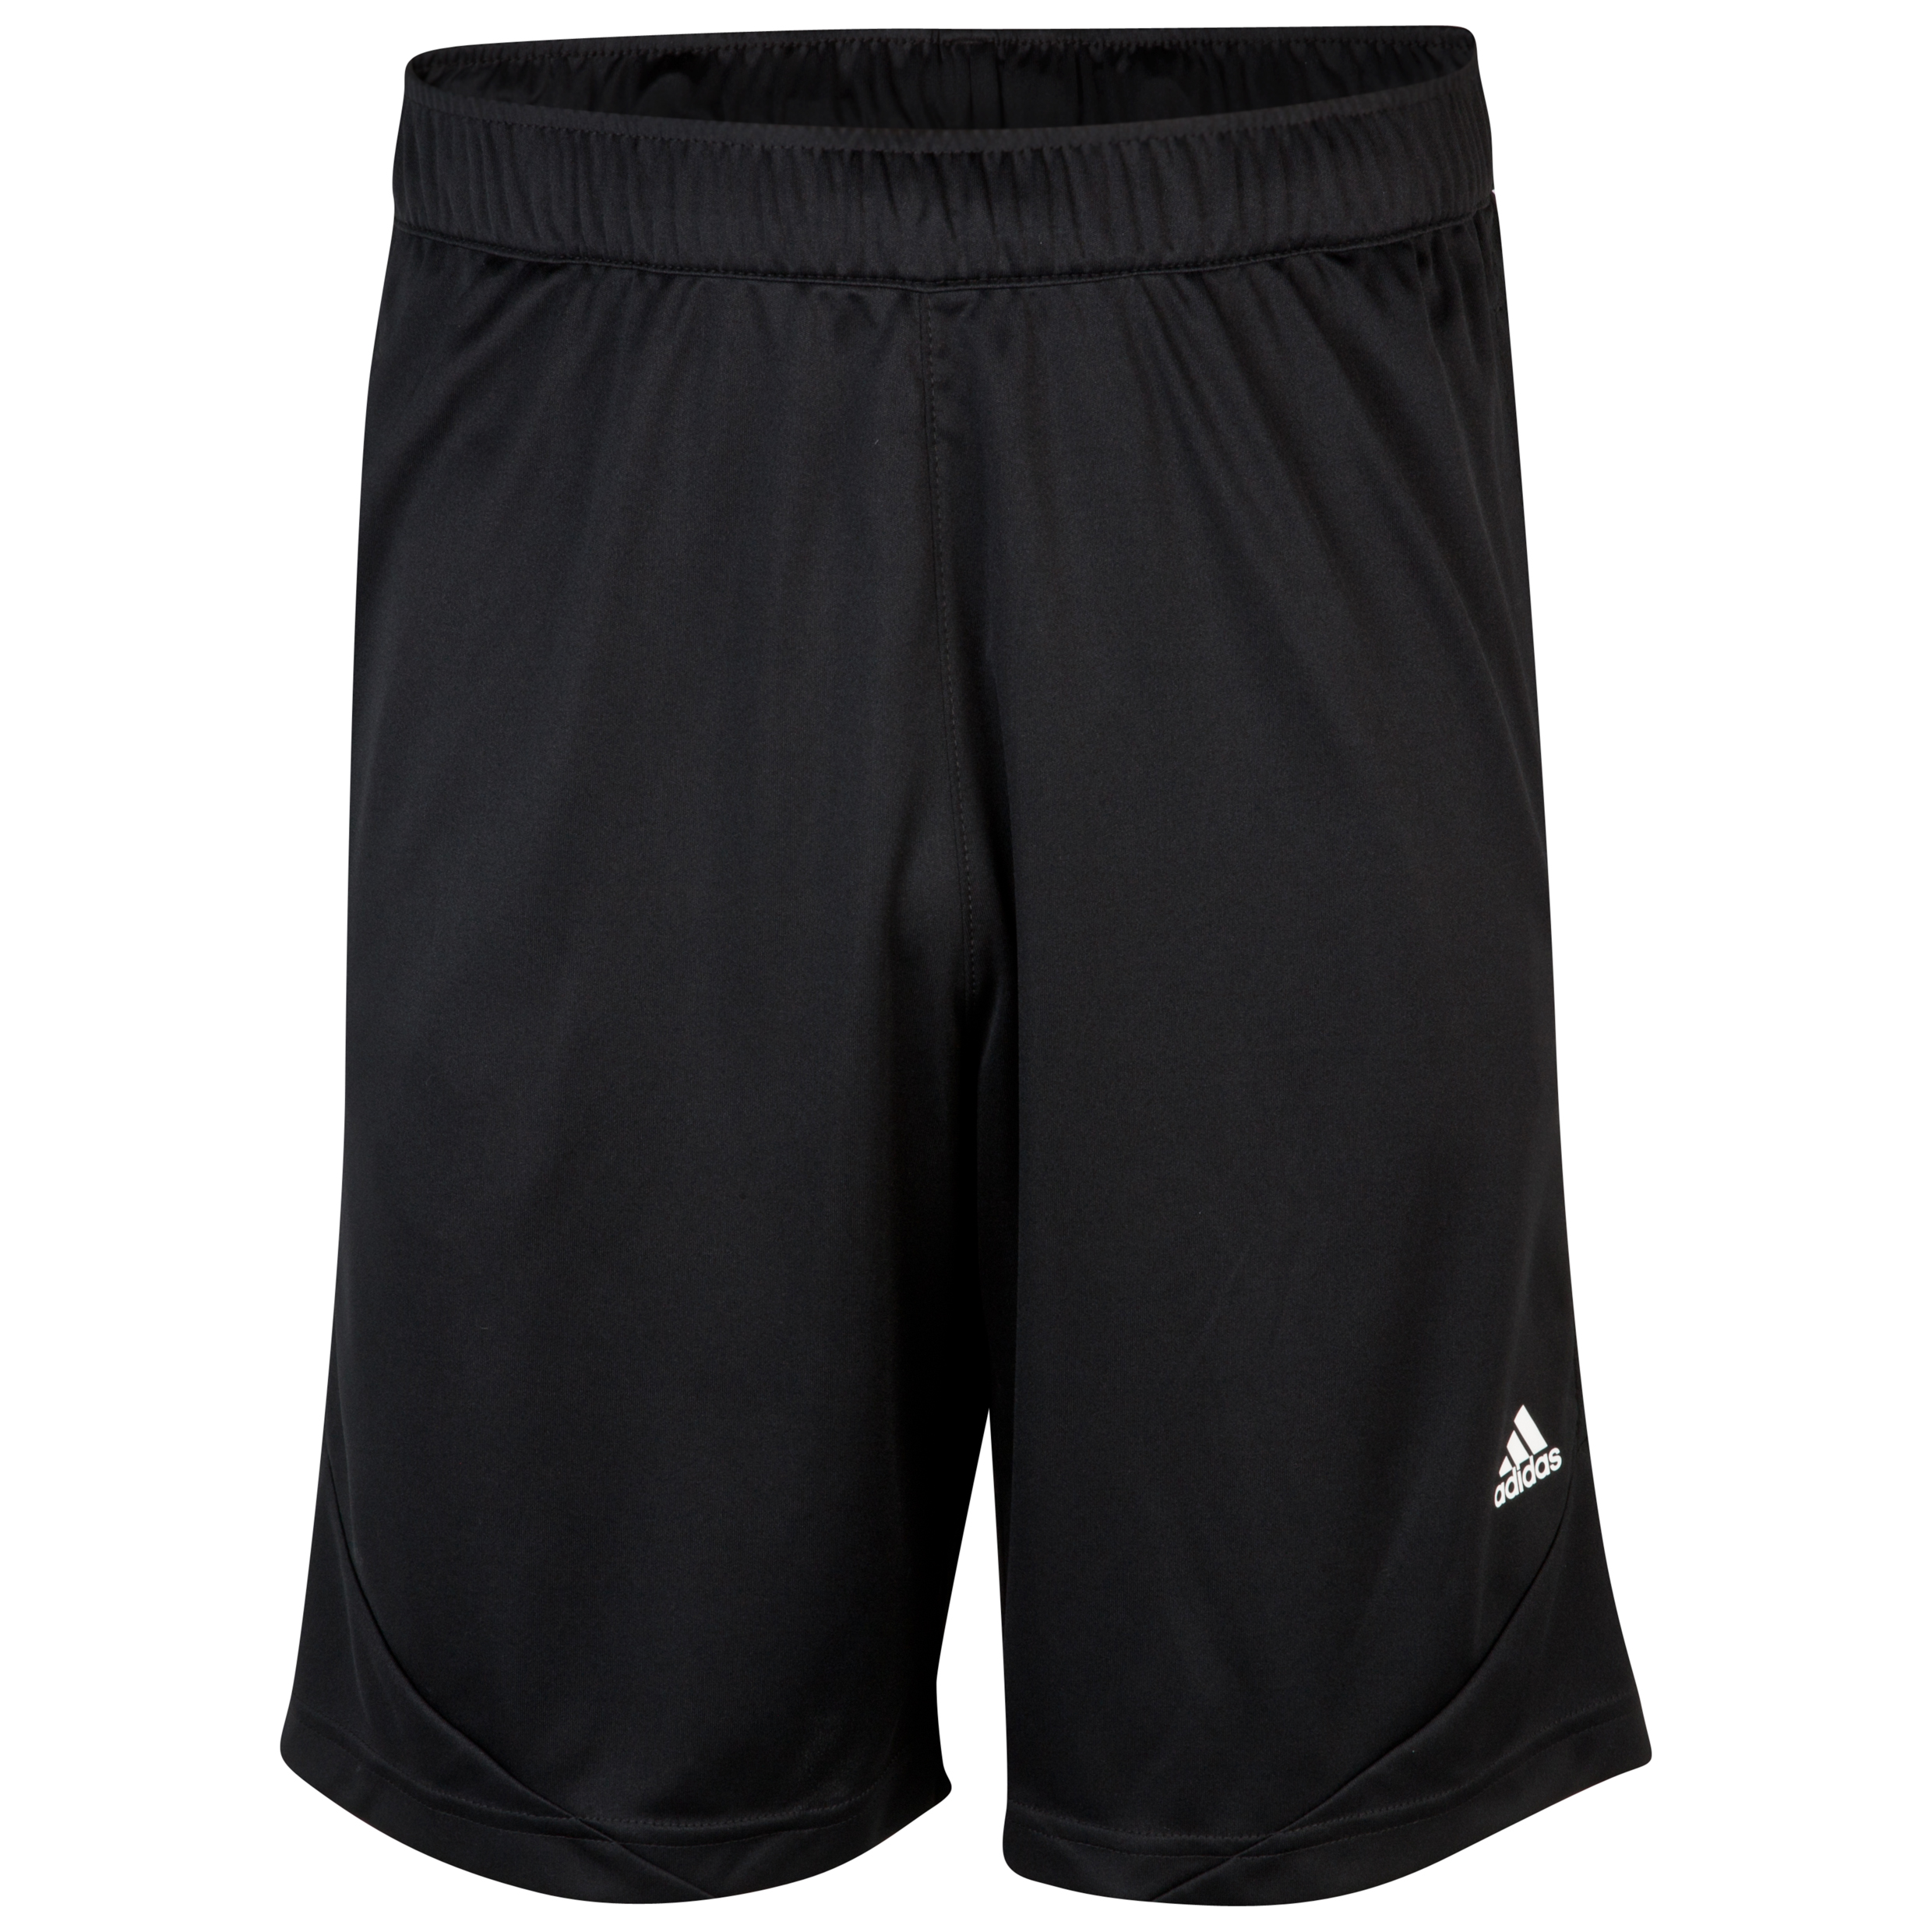 adidas Predator Training Short - Black/White